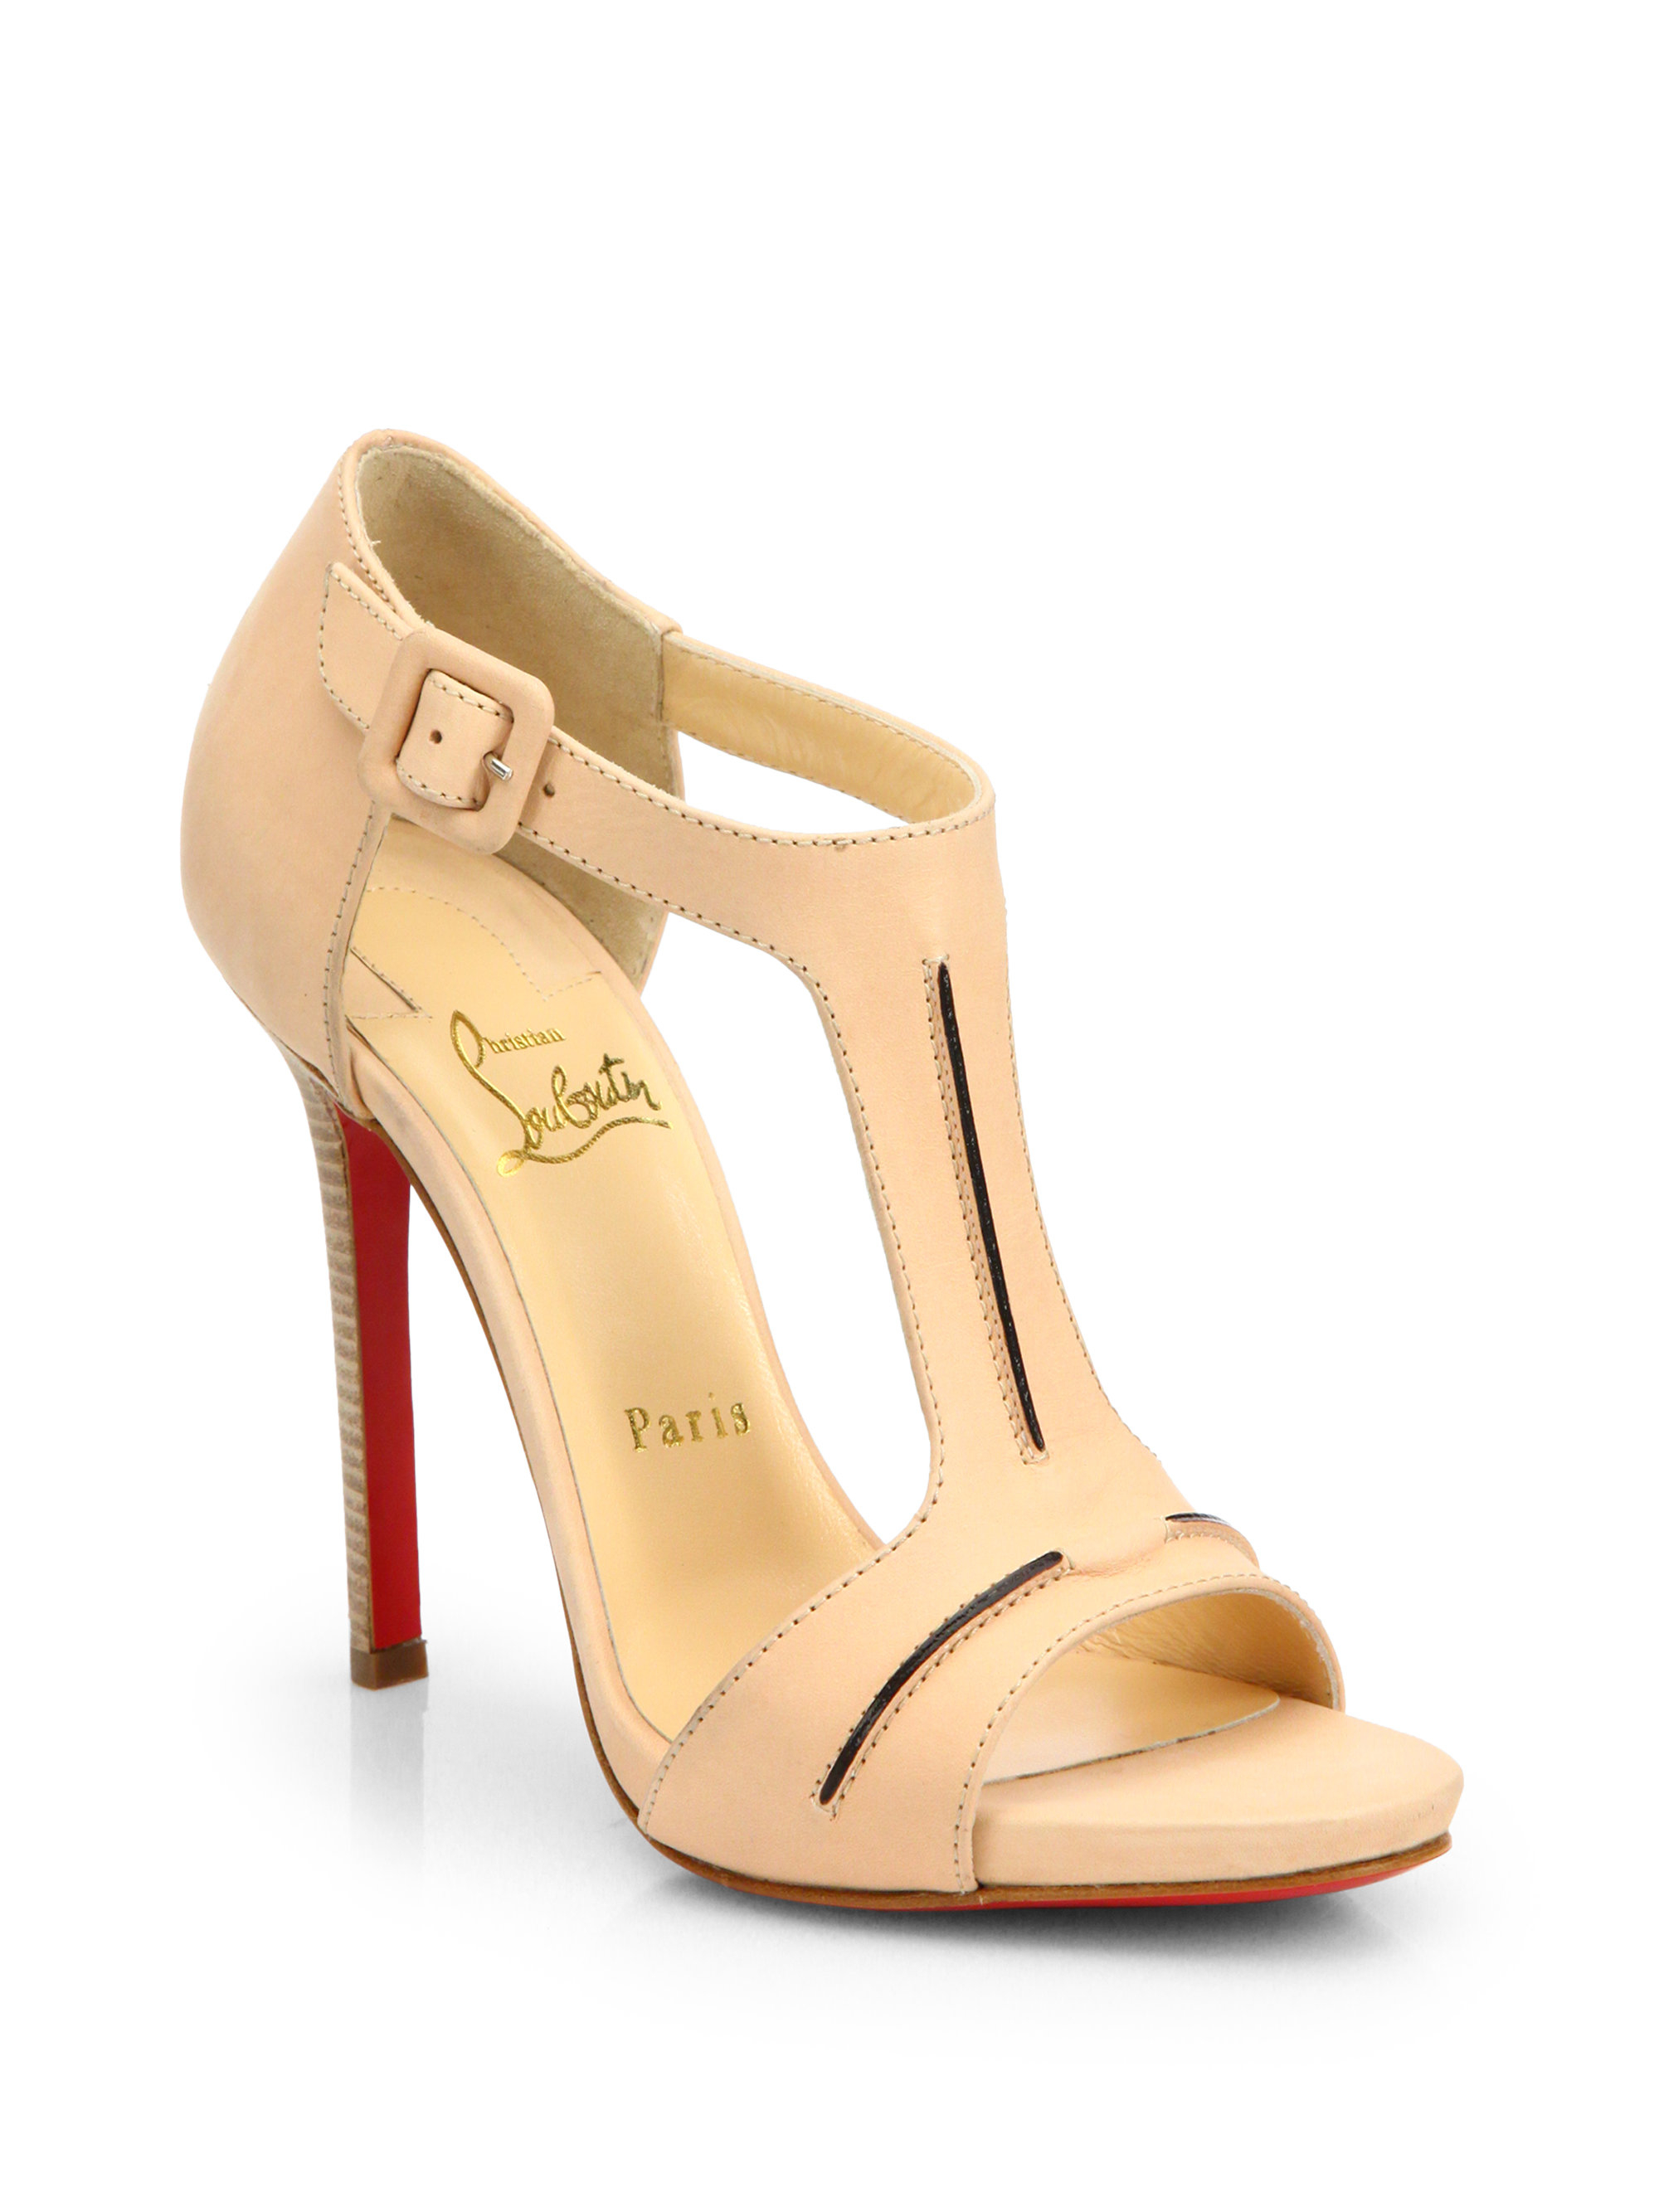 christian louboutin sandals White leather stacked heels | The ...